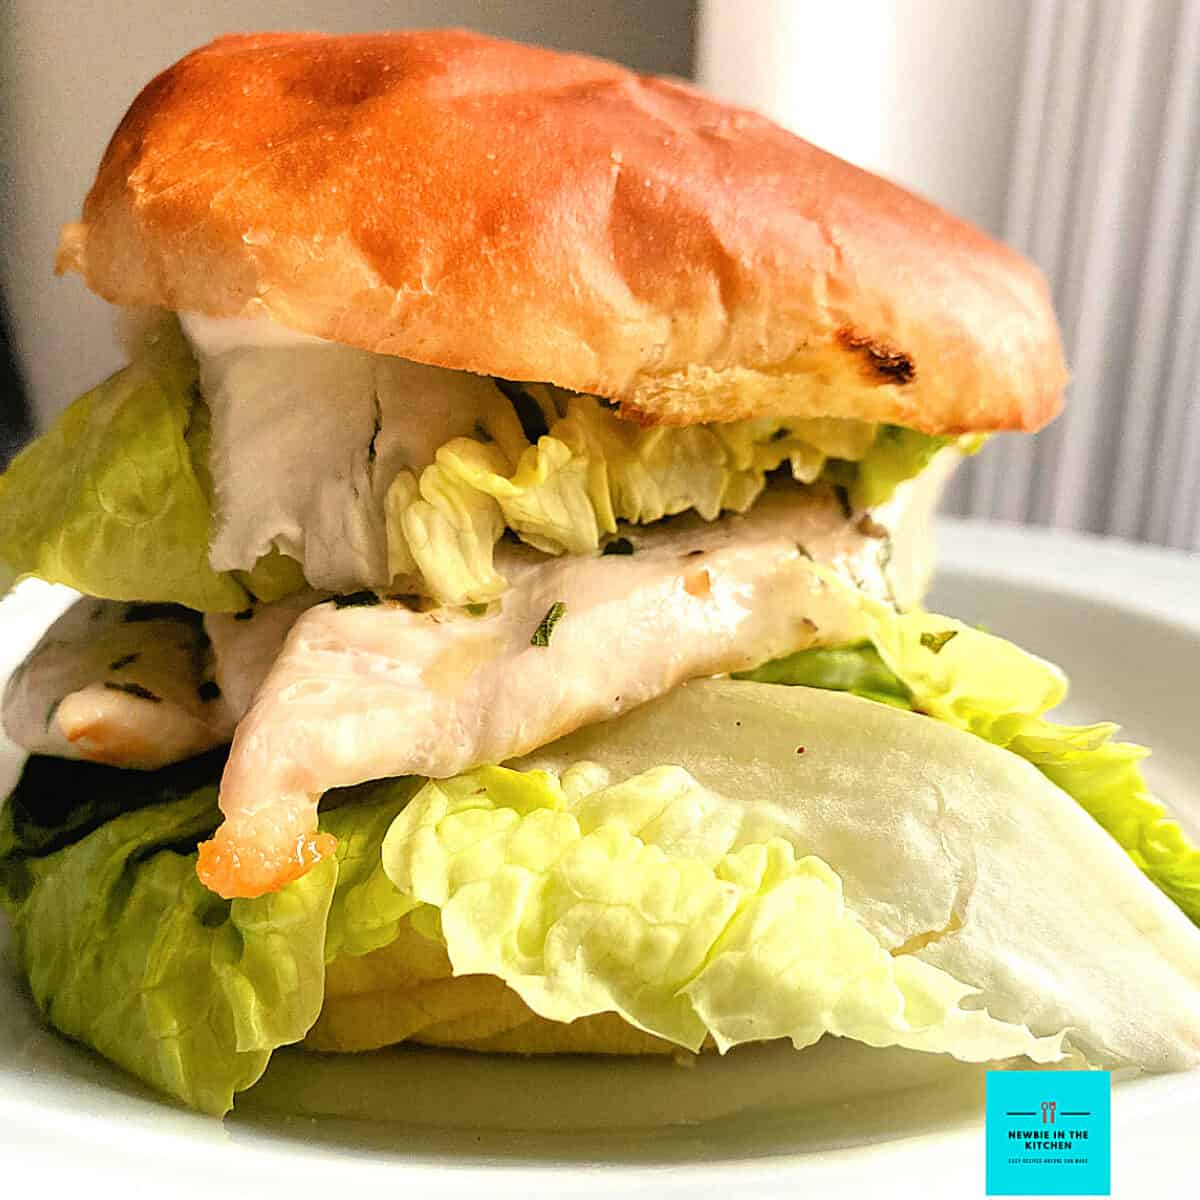 Quick Grilled Chicken Burger. Quick and easy juicy grilled chicken breast, seasoned with herbs, in a toasted brioche bun, layered with crisp lettuce. Perfect for lunch or dinner